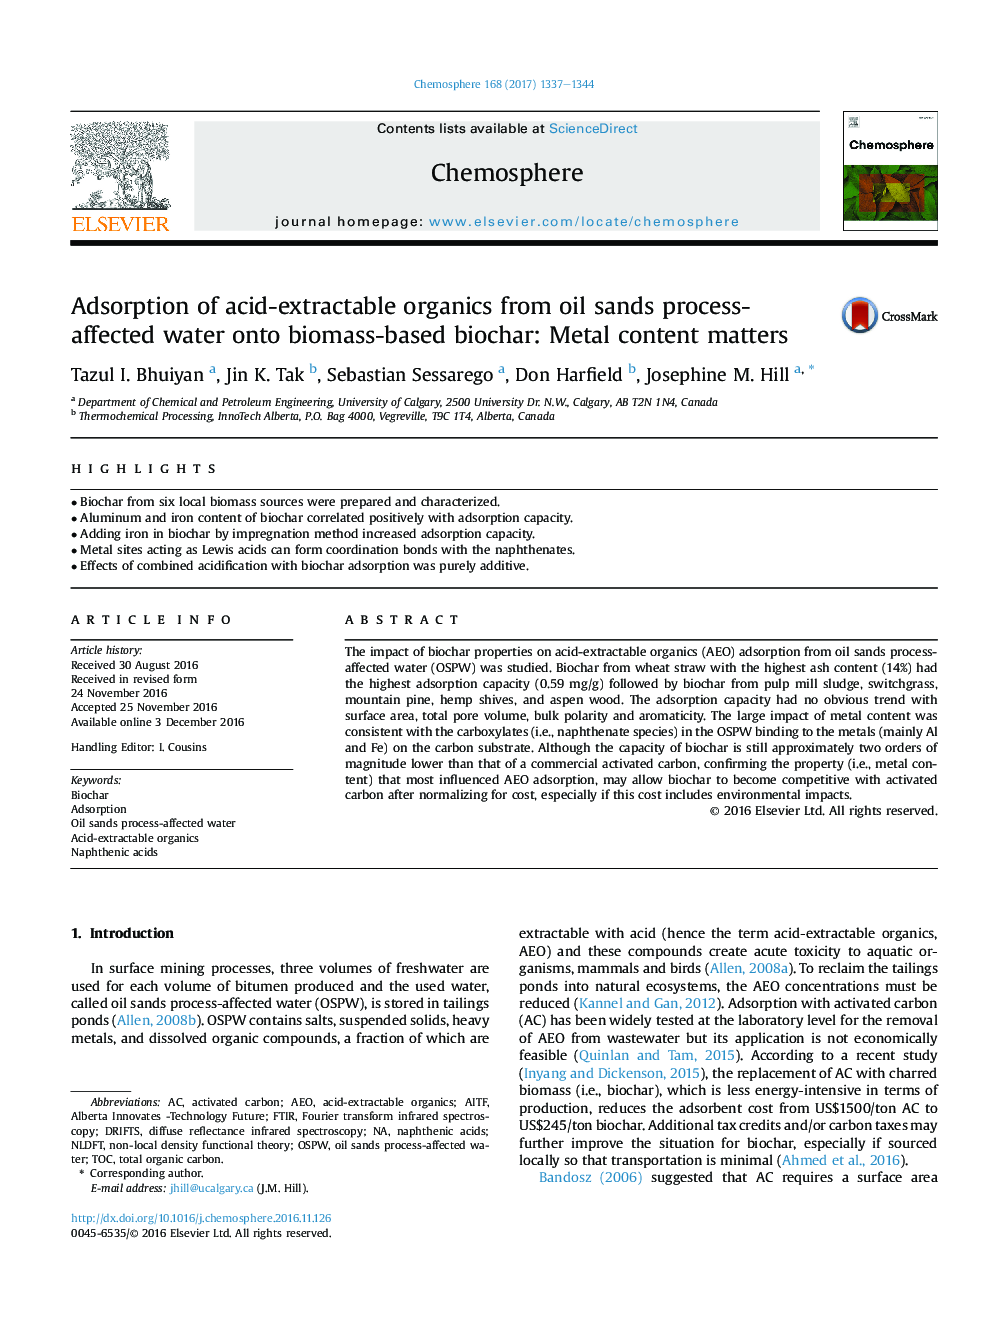 Adsorption of acid-extractable organics from oil sands process-affected water onto biomass-based biochar: Metal content matters